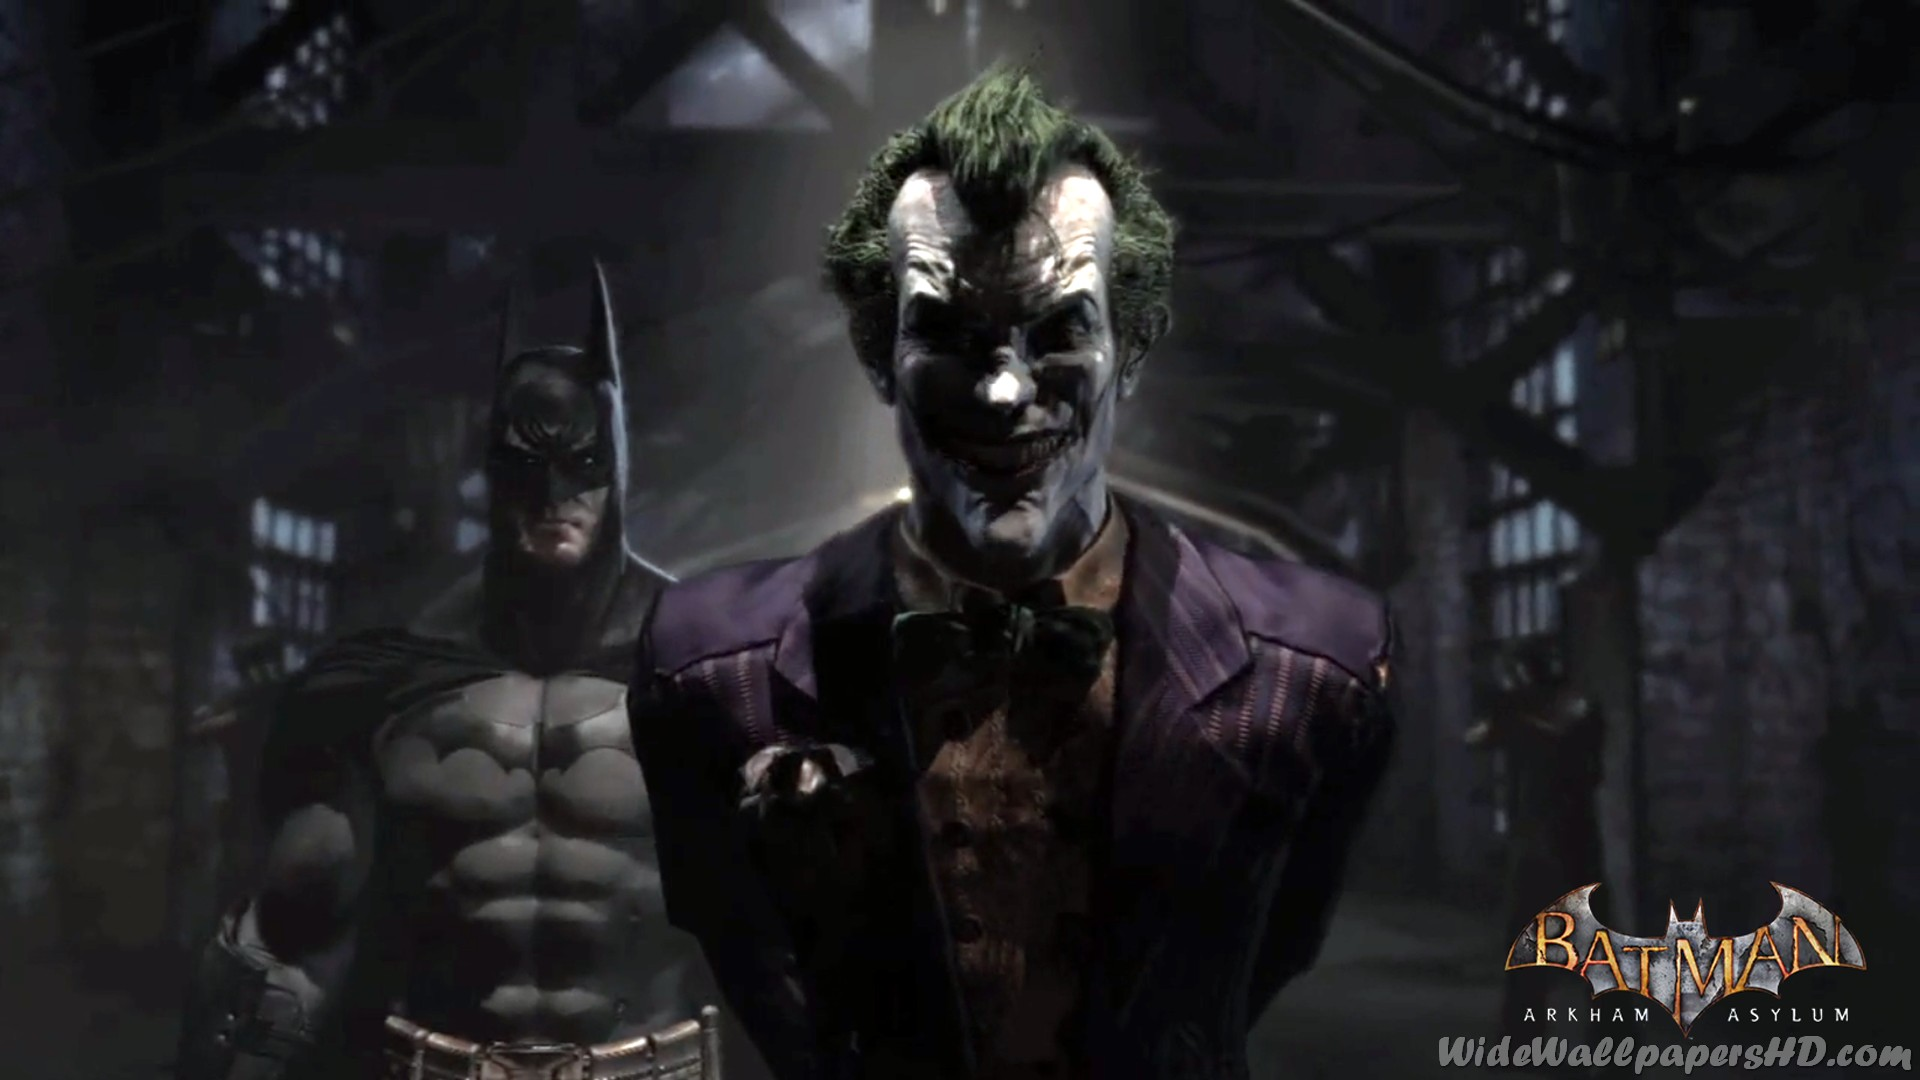 Joker Arkham Asylum Wallpaper 1920x1080